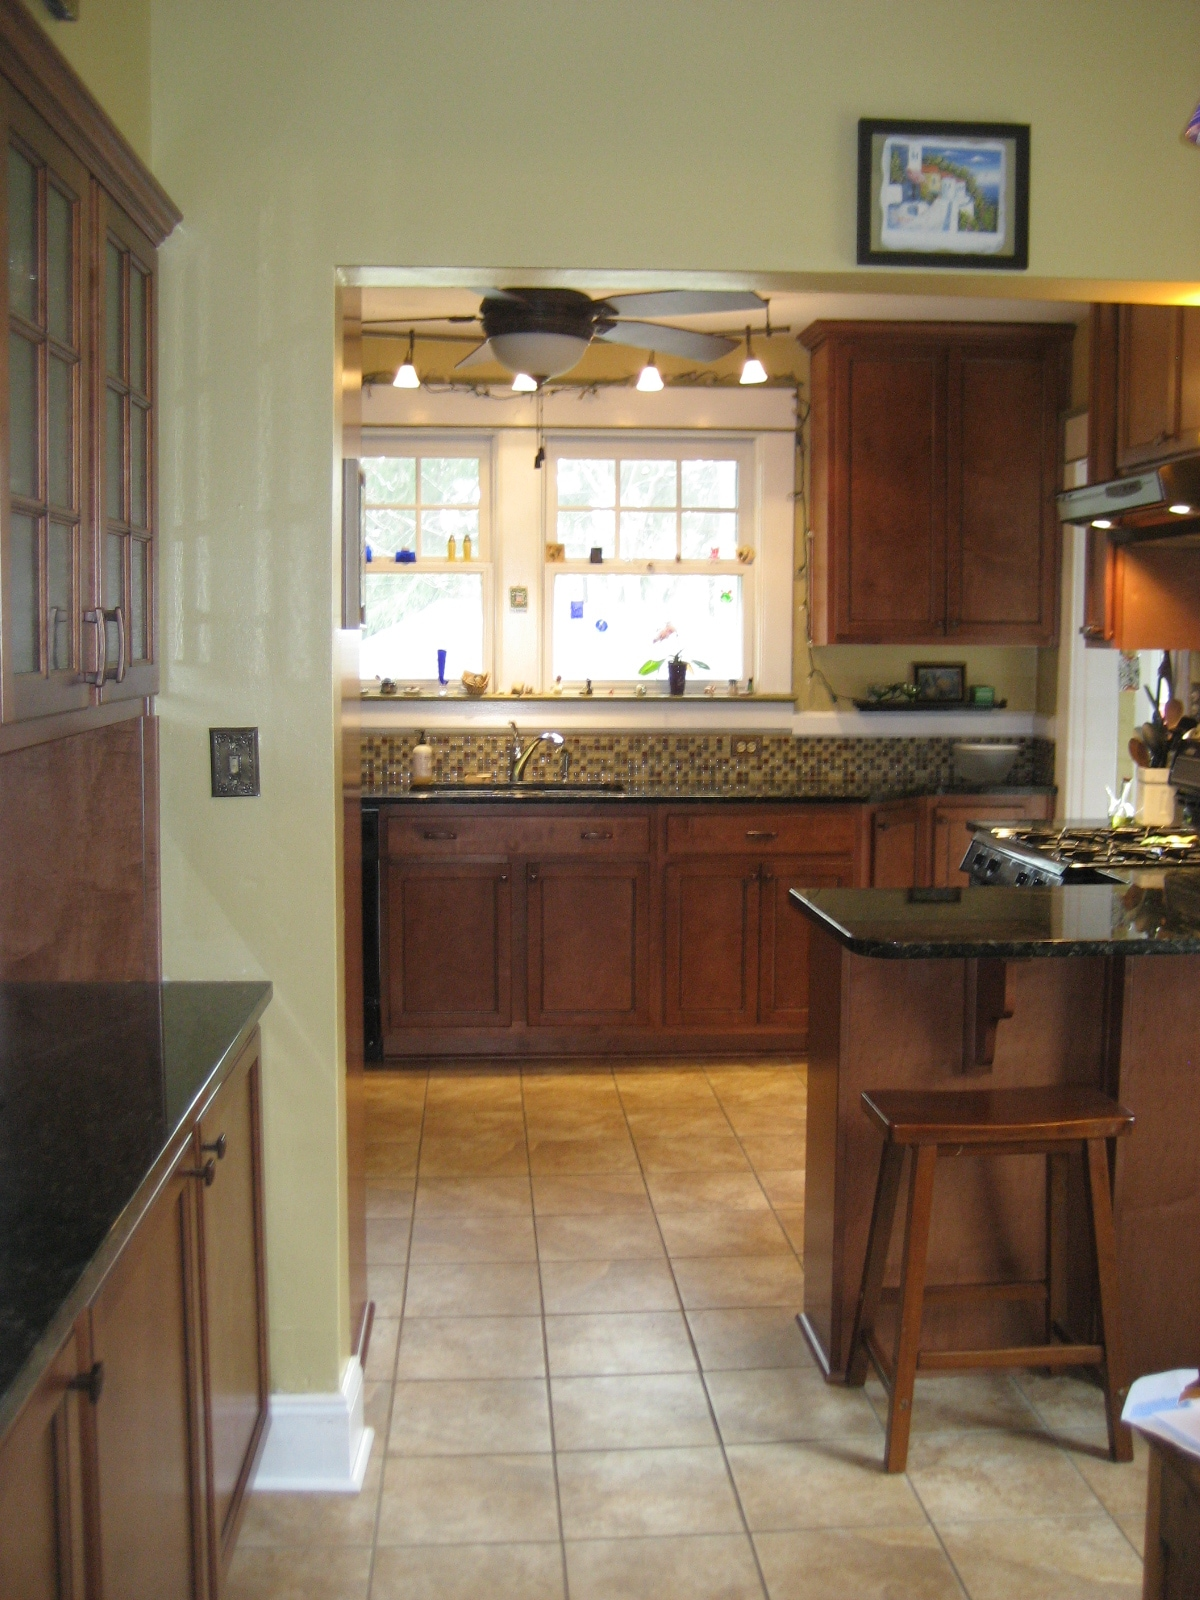 Updated Fully Equipped Kitchen